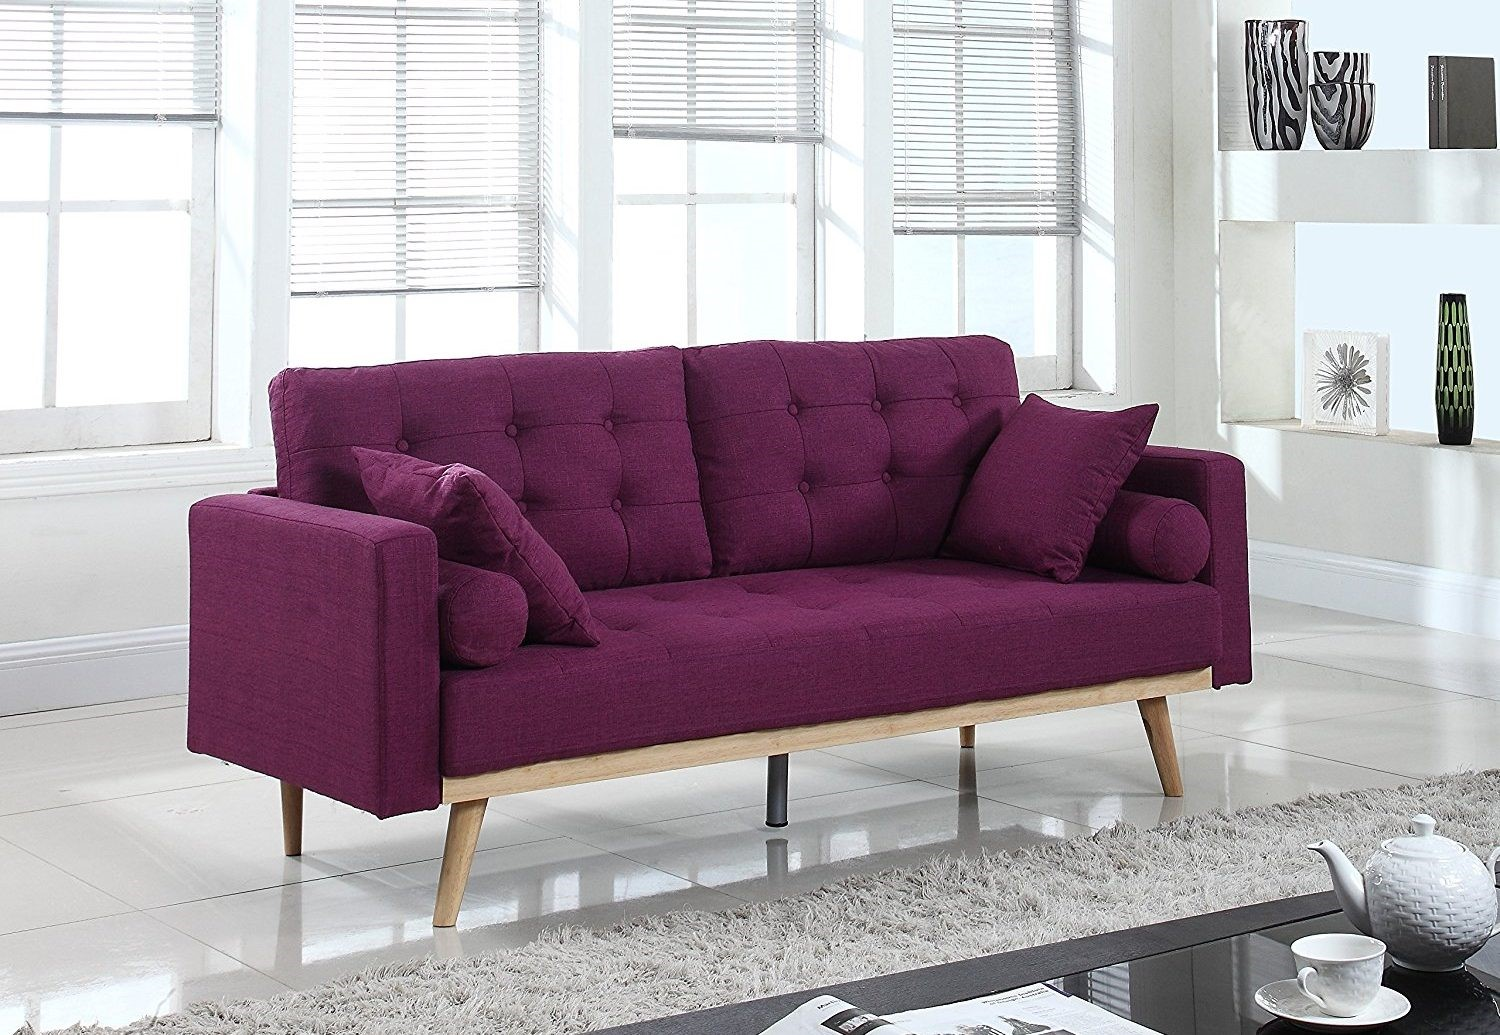 purple tufted sofa set best deep sectional sofas mid century linen fabric review